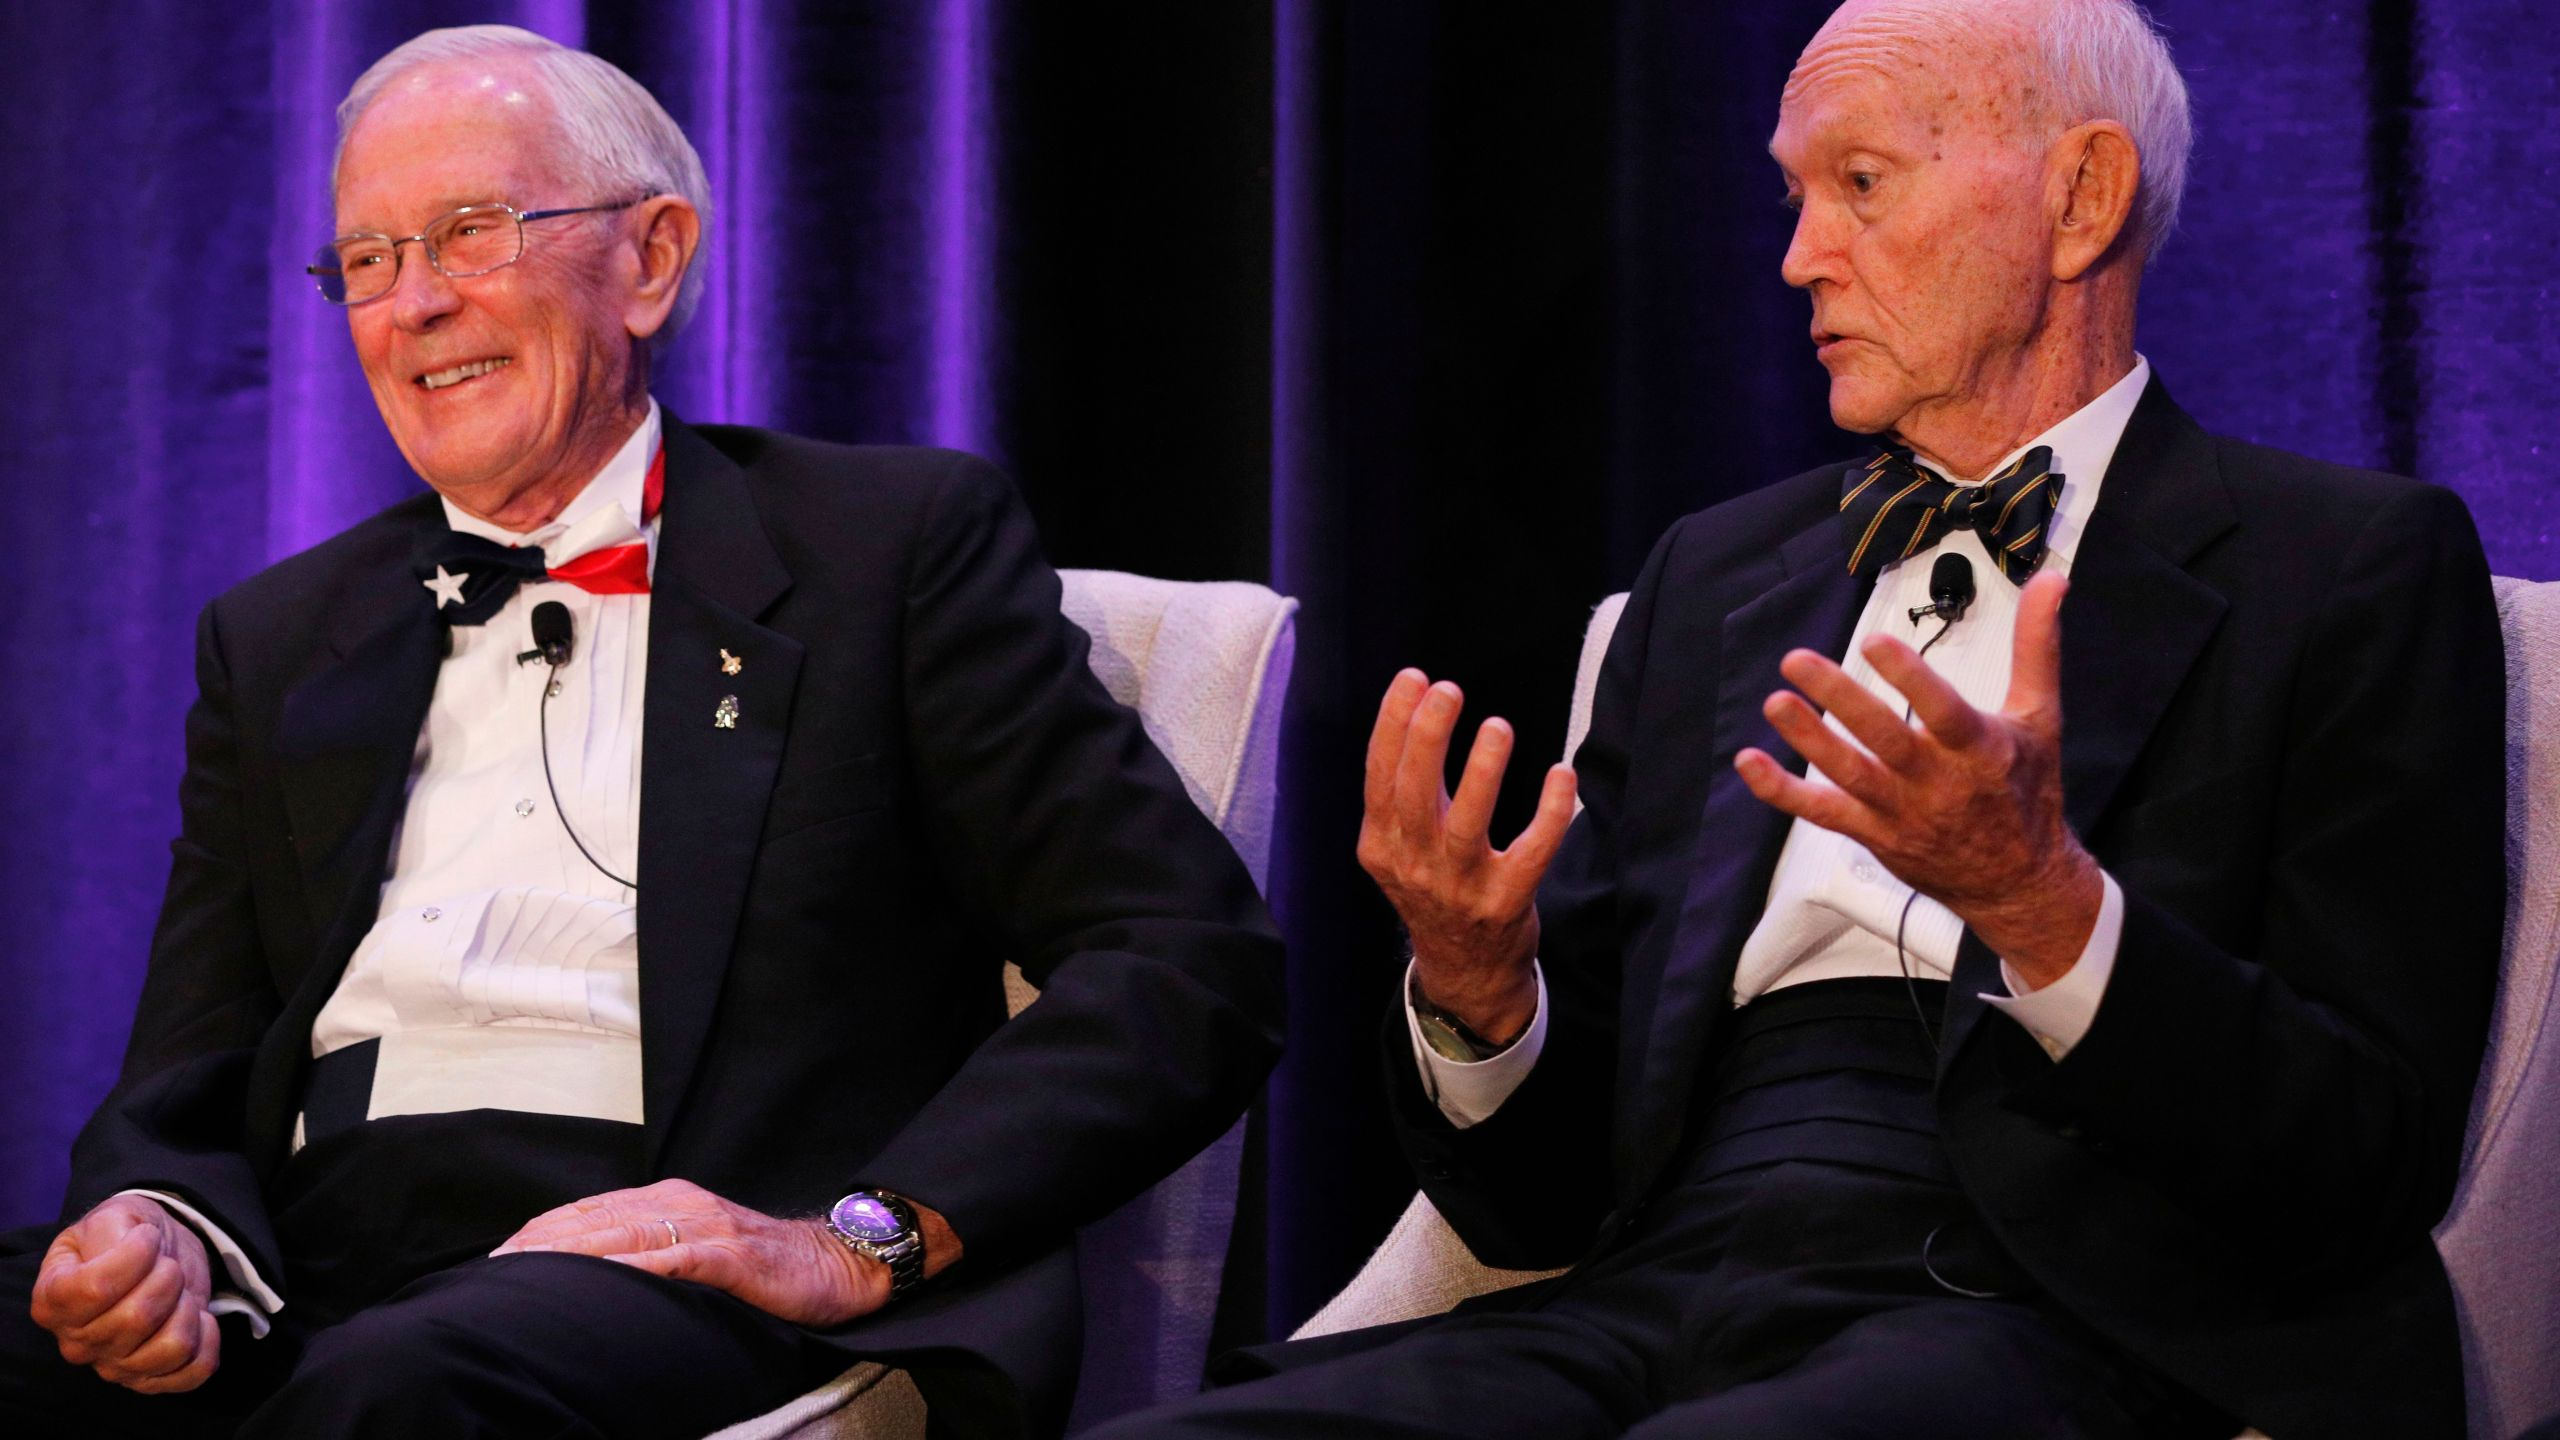 """Apollo 16 astronaut Charlie Duke, left, reacts to a remark from Apollo 11 astronaut Michael Collins during the """"Legends of Apollo"""" media event in Cocoa Beach, Florida on July 16, 2019. (Credit: Gregg Newton / AFP / Getty Images)"""